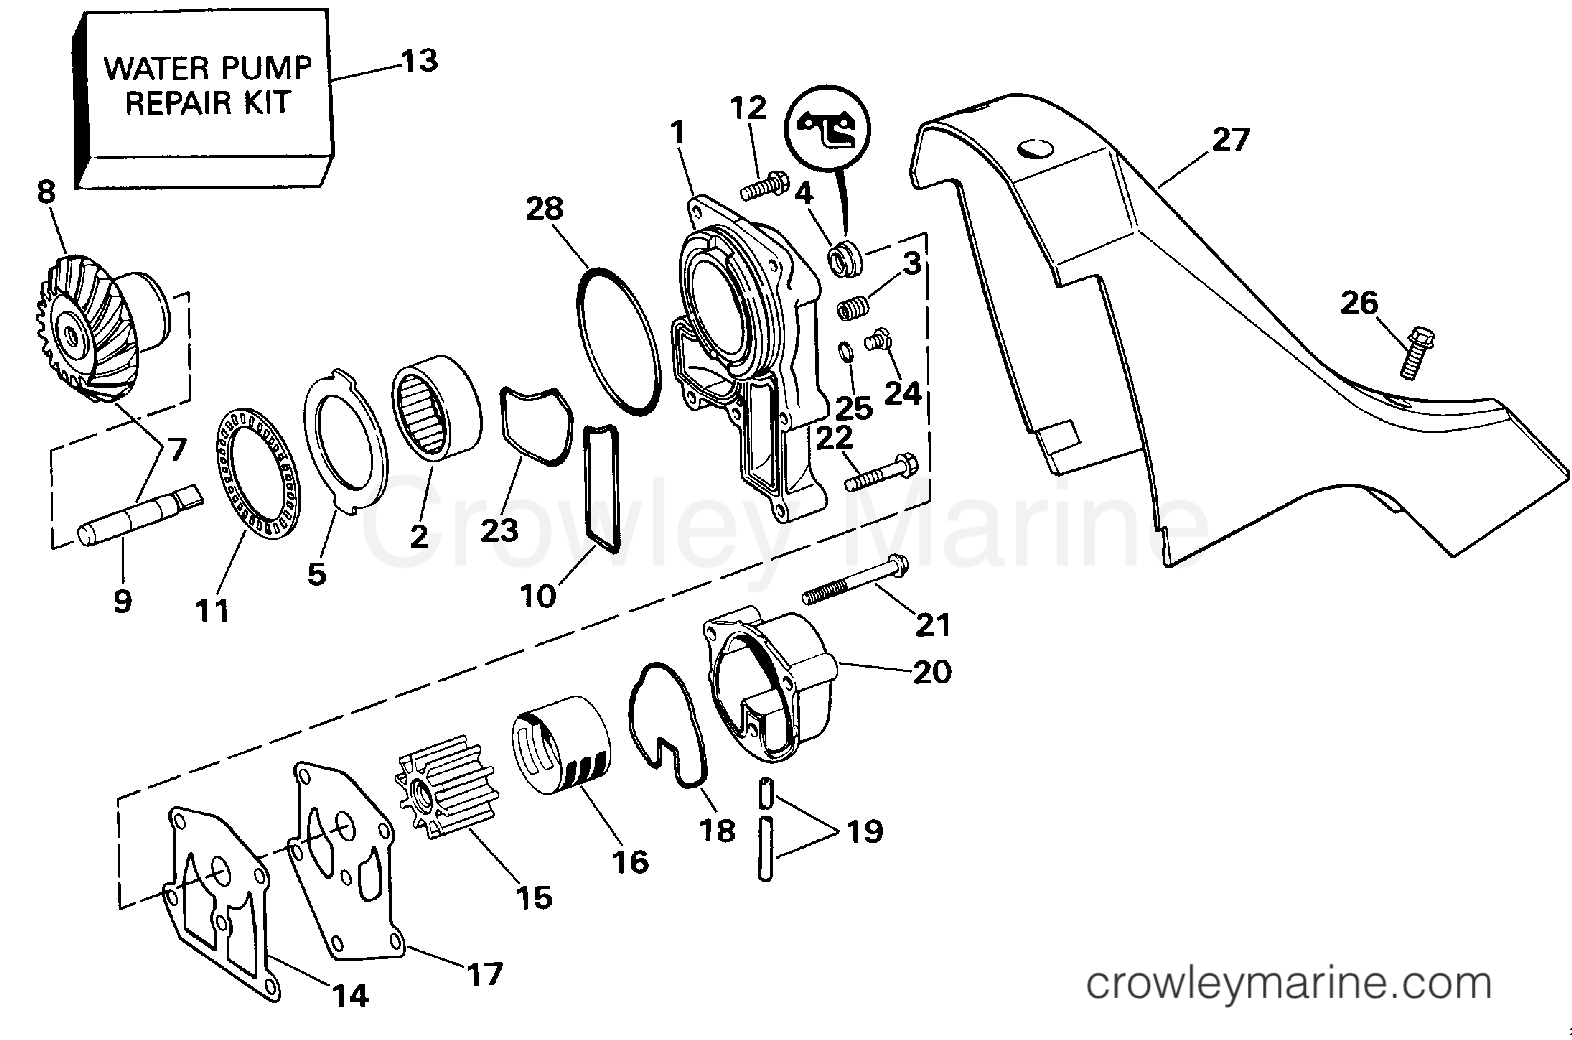 Omc Water Pump Diagram Wiring Harness Adapter Stern Drive Apepws And Adaptor Section 1572x1040